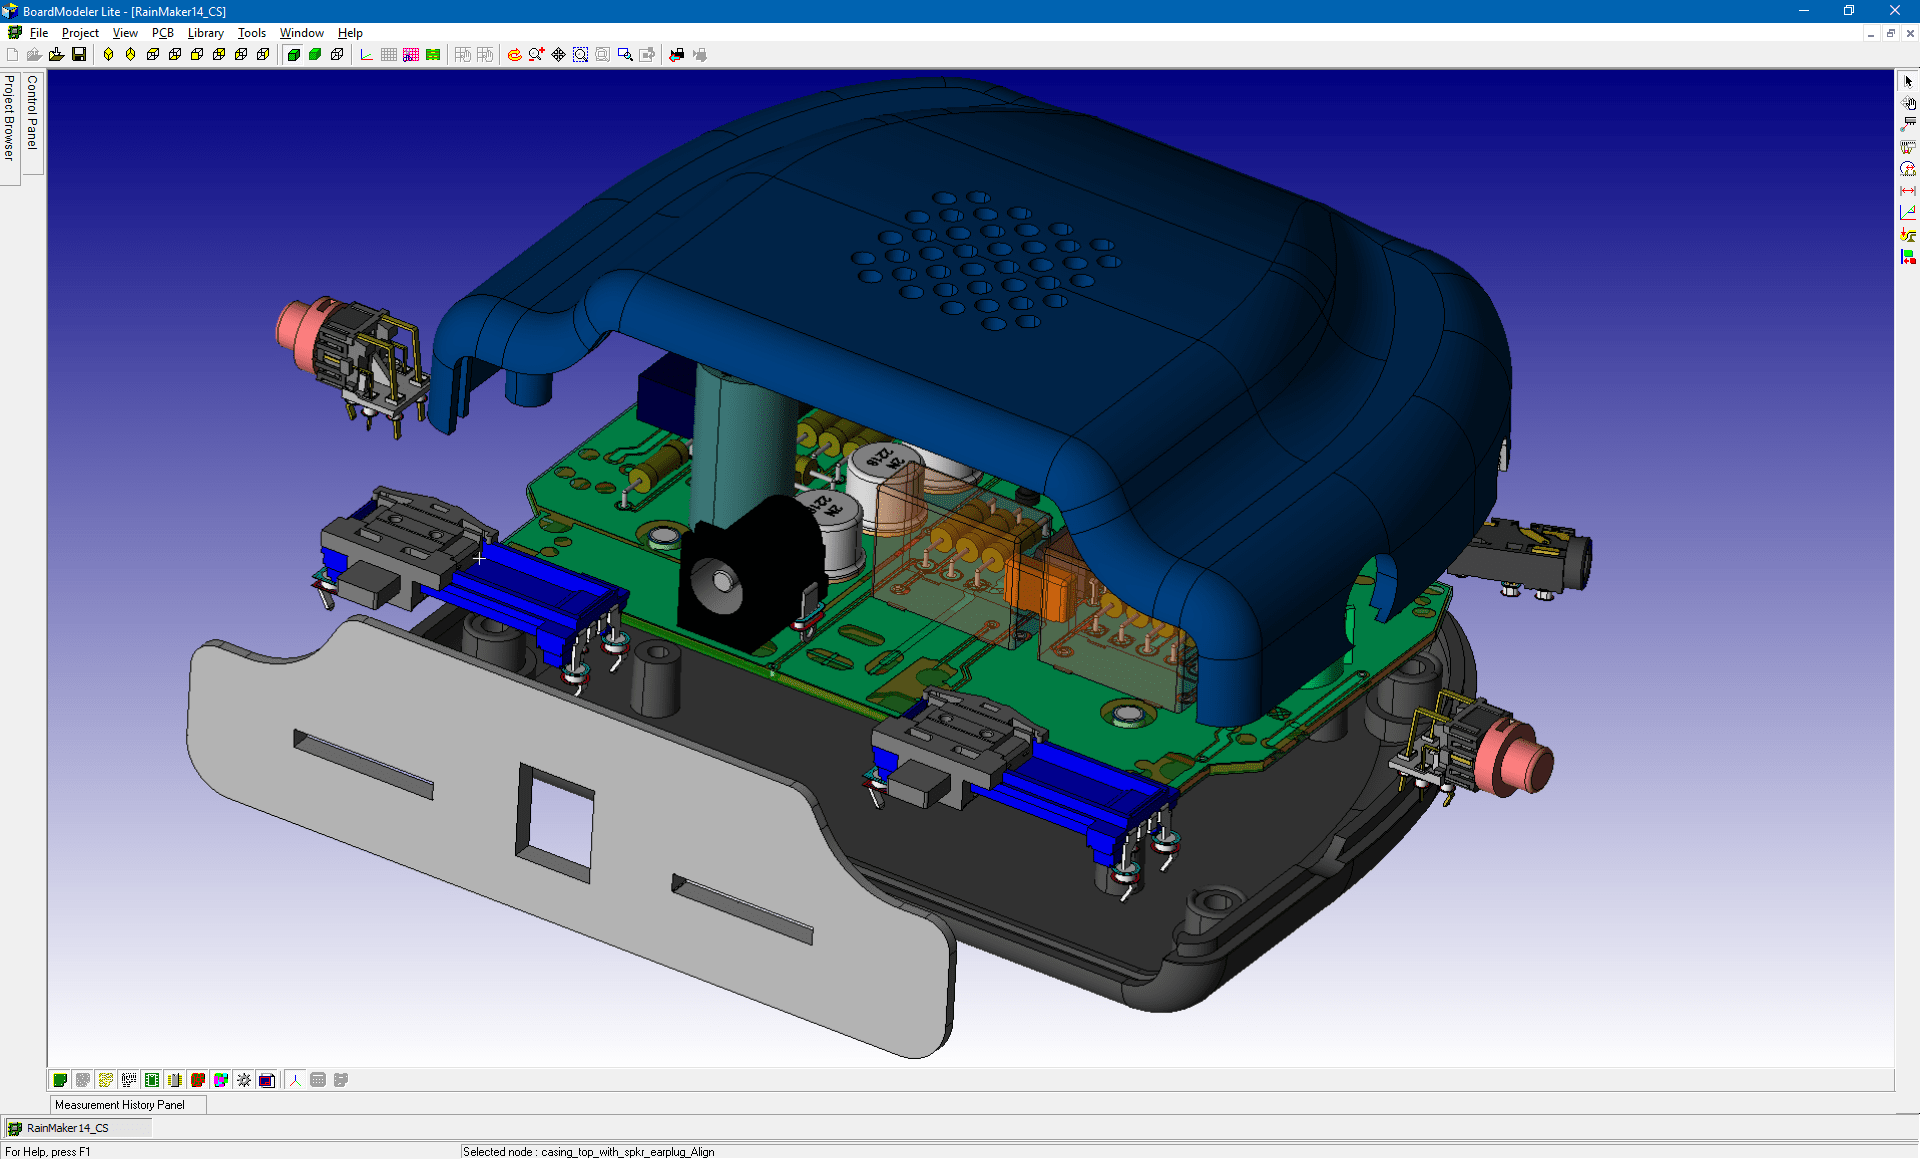 pcb design software cadstar board modeler lite explosive view